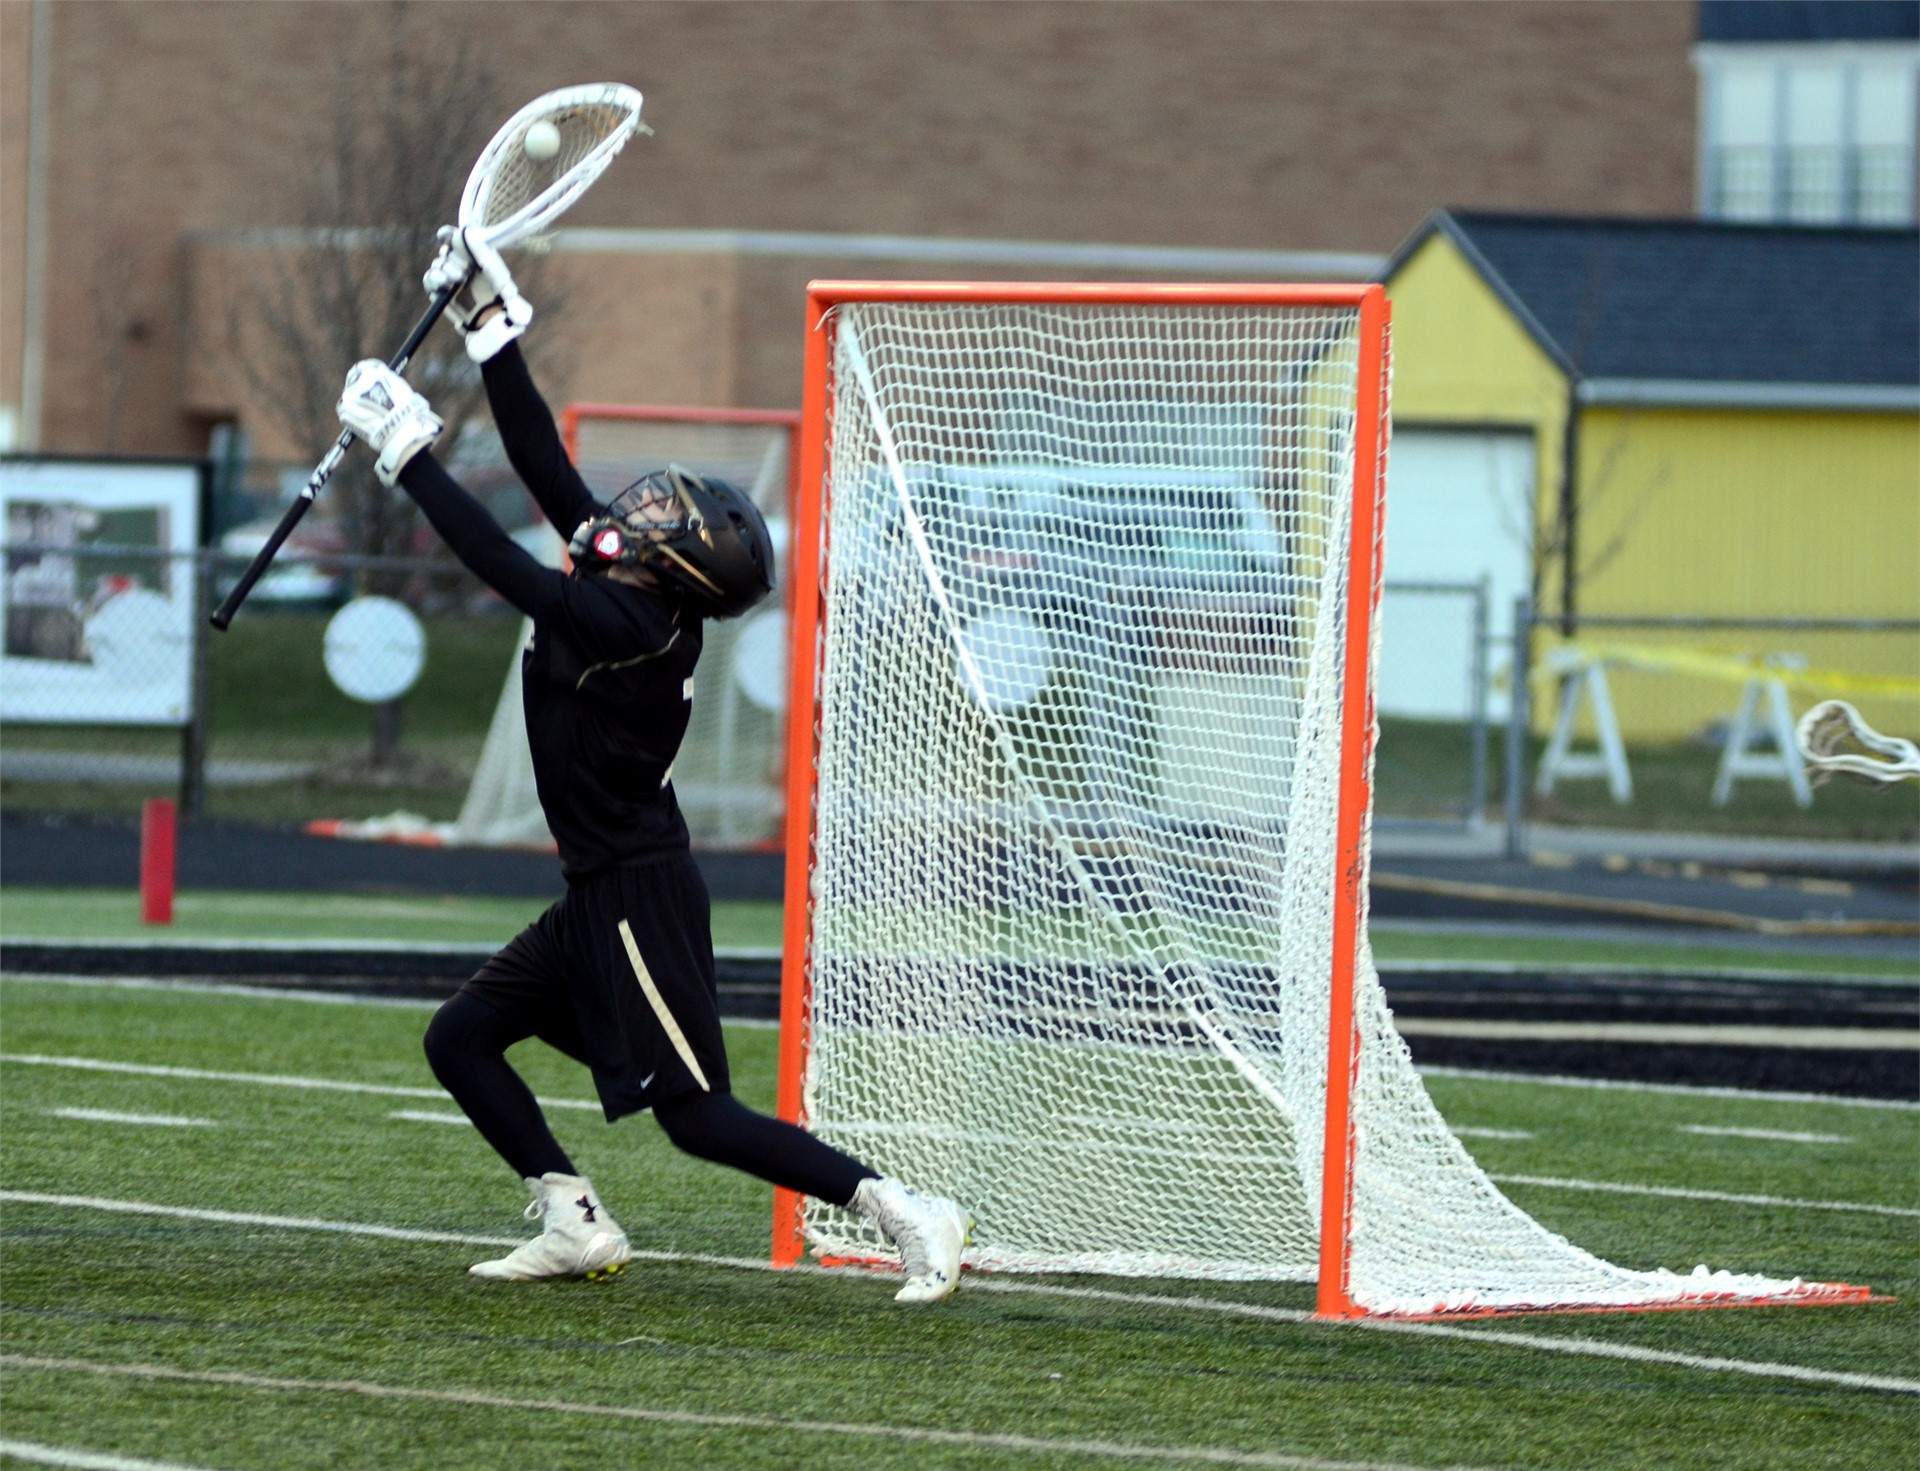 lacrosse player catching a ball in front of the net